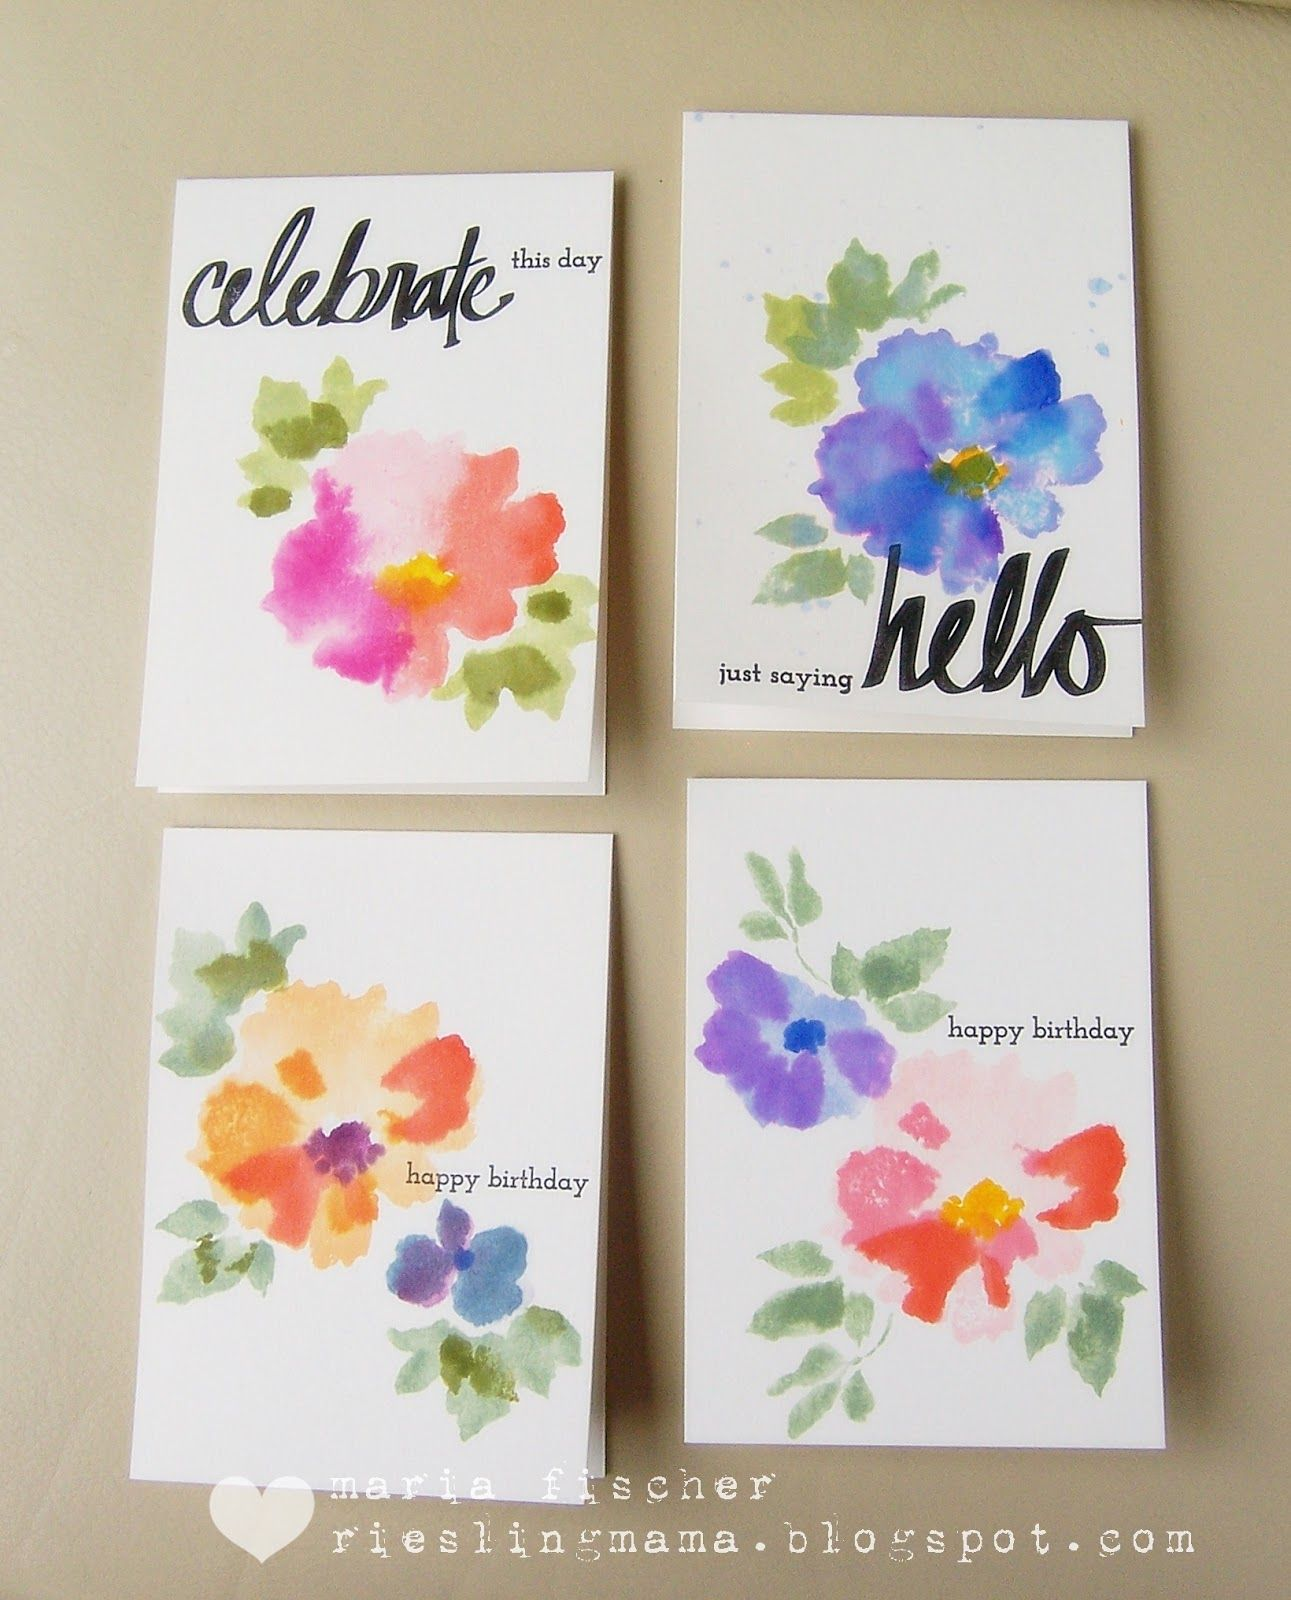 1291x1600 Image Result For Watercolor Cards Watercolor Cards